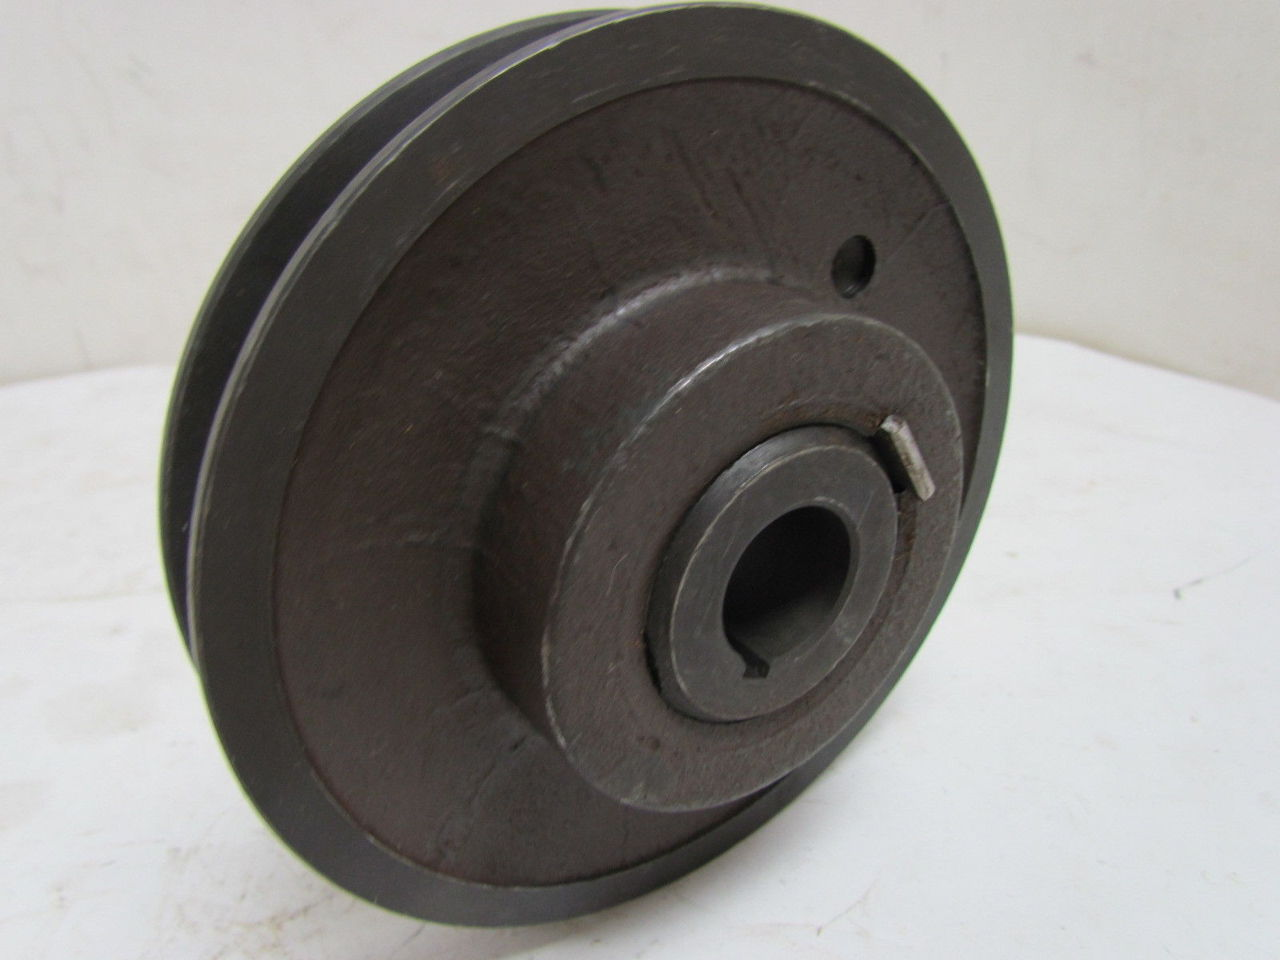 Adjustable Pulleys : Maurey lx single groove adjustable pitch variable pulley sheave quot bore